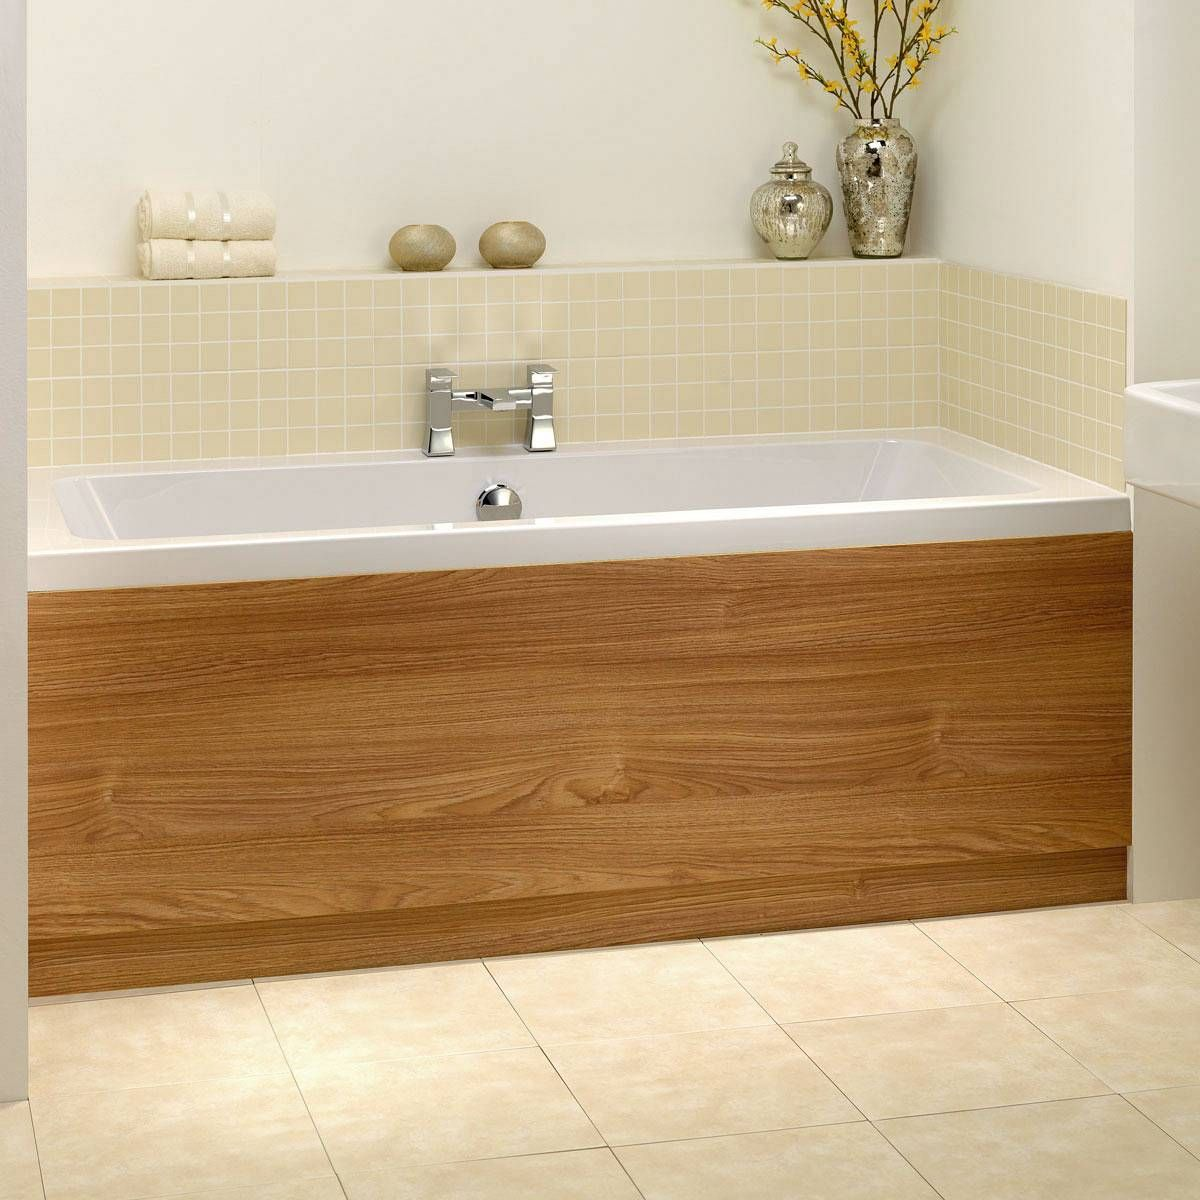 Oak wooden bath panel 1700 victoria 49 or in white for Salle de bain baignoire d angle zen